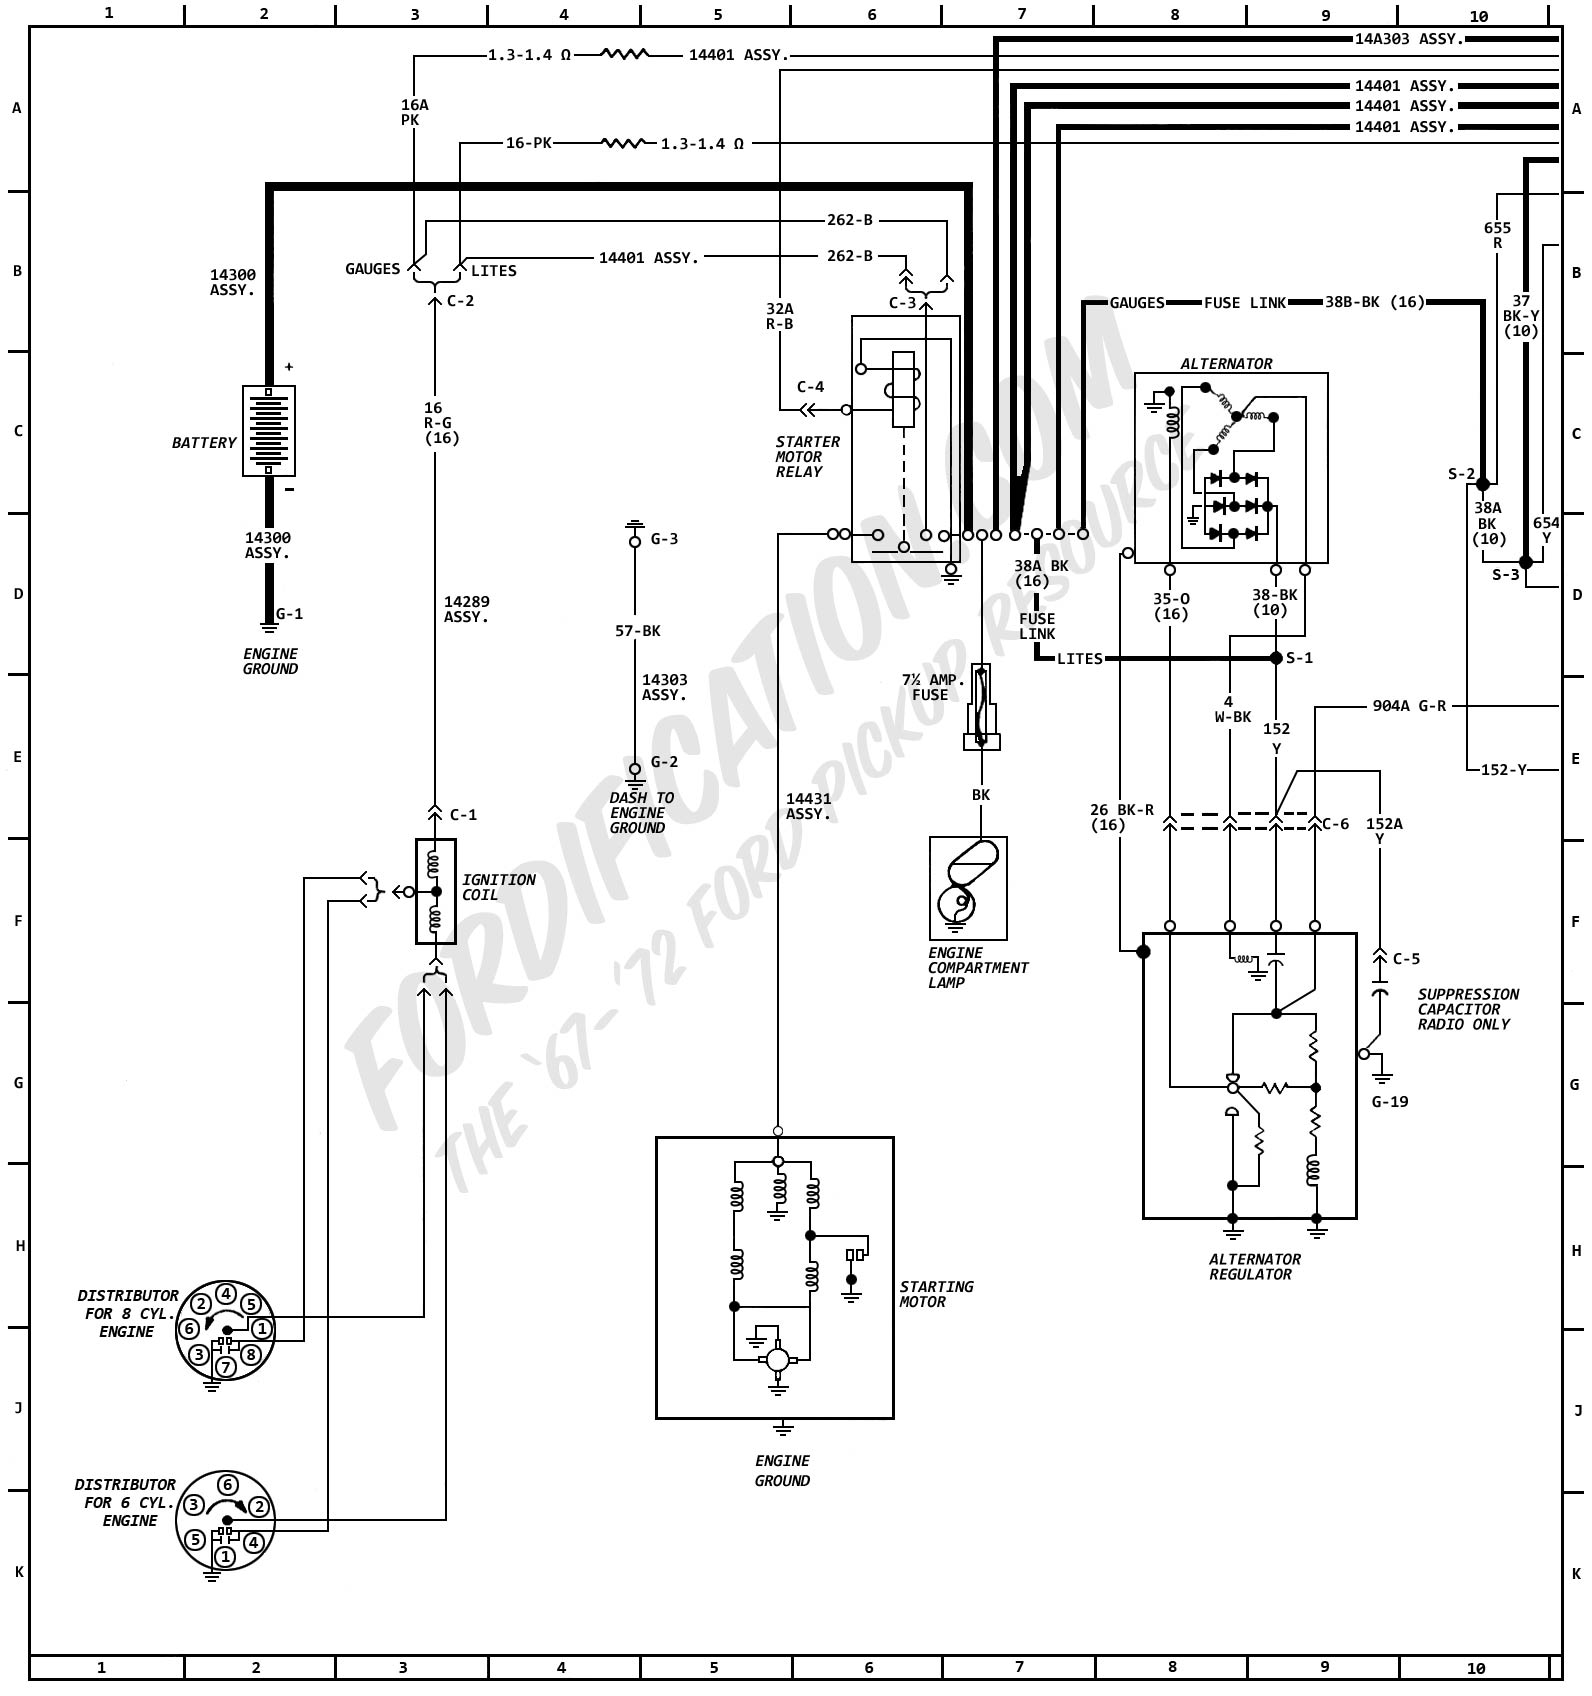 1972MasterWiring_01 1972 ford truck wiring diagrams fordification com 1971 ford f250 wiring diagram at metegol.co